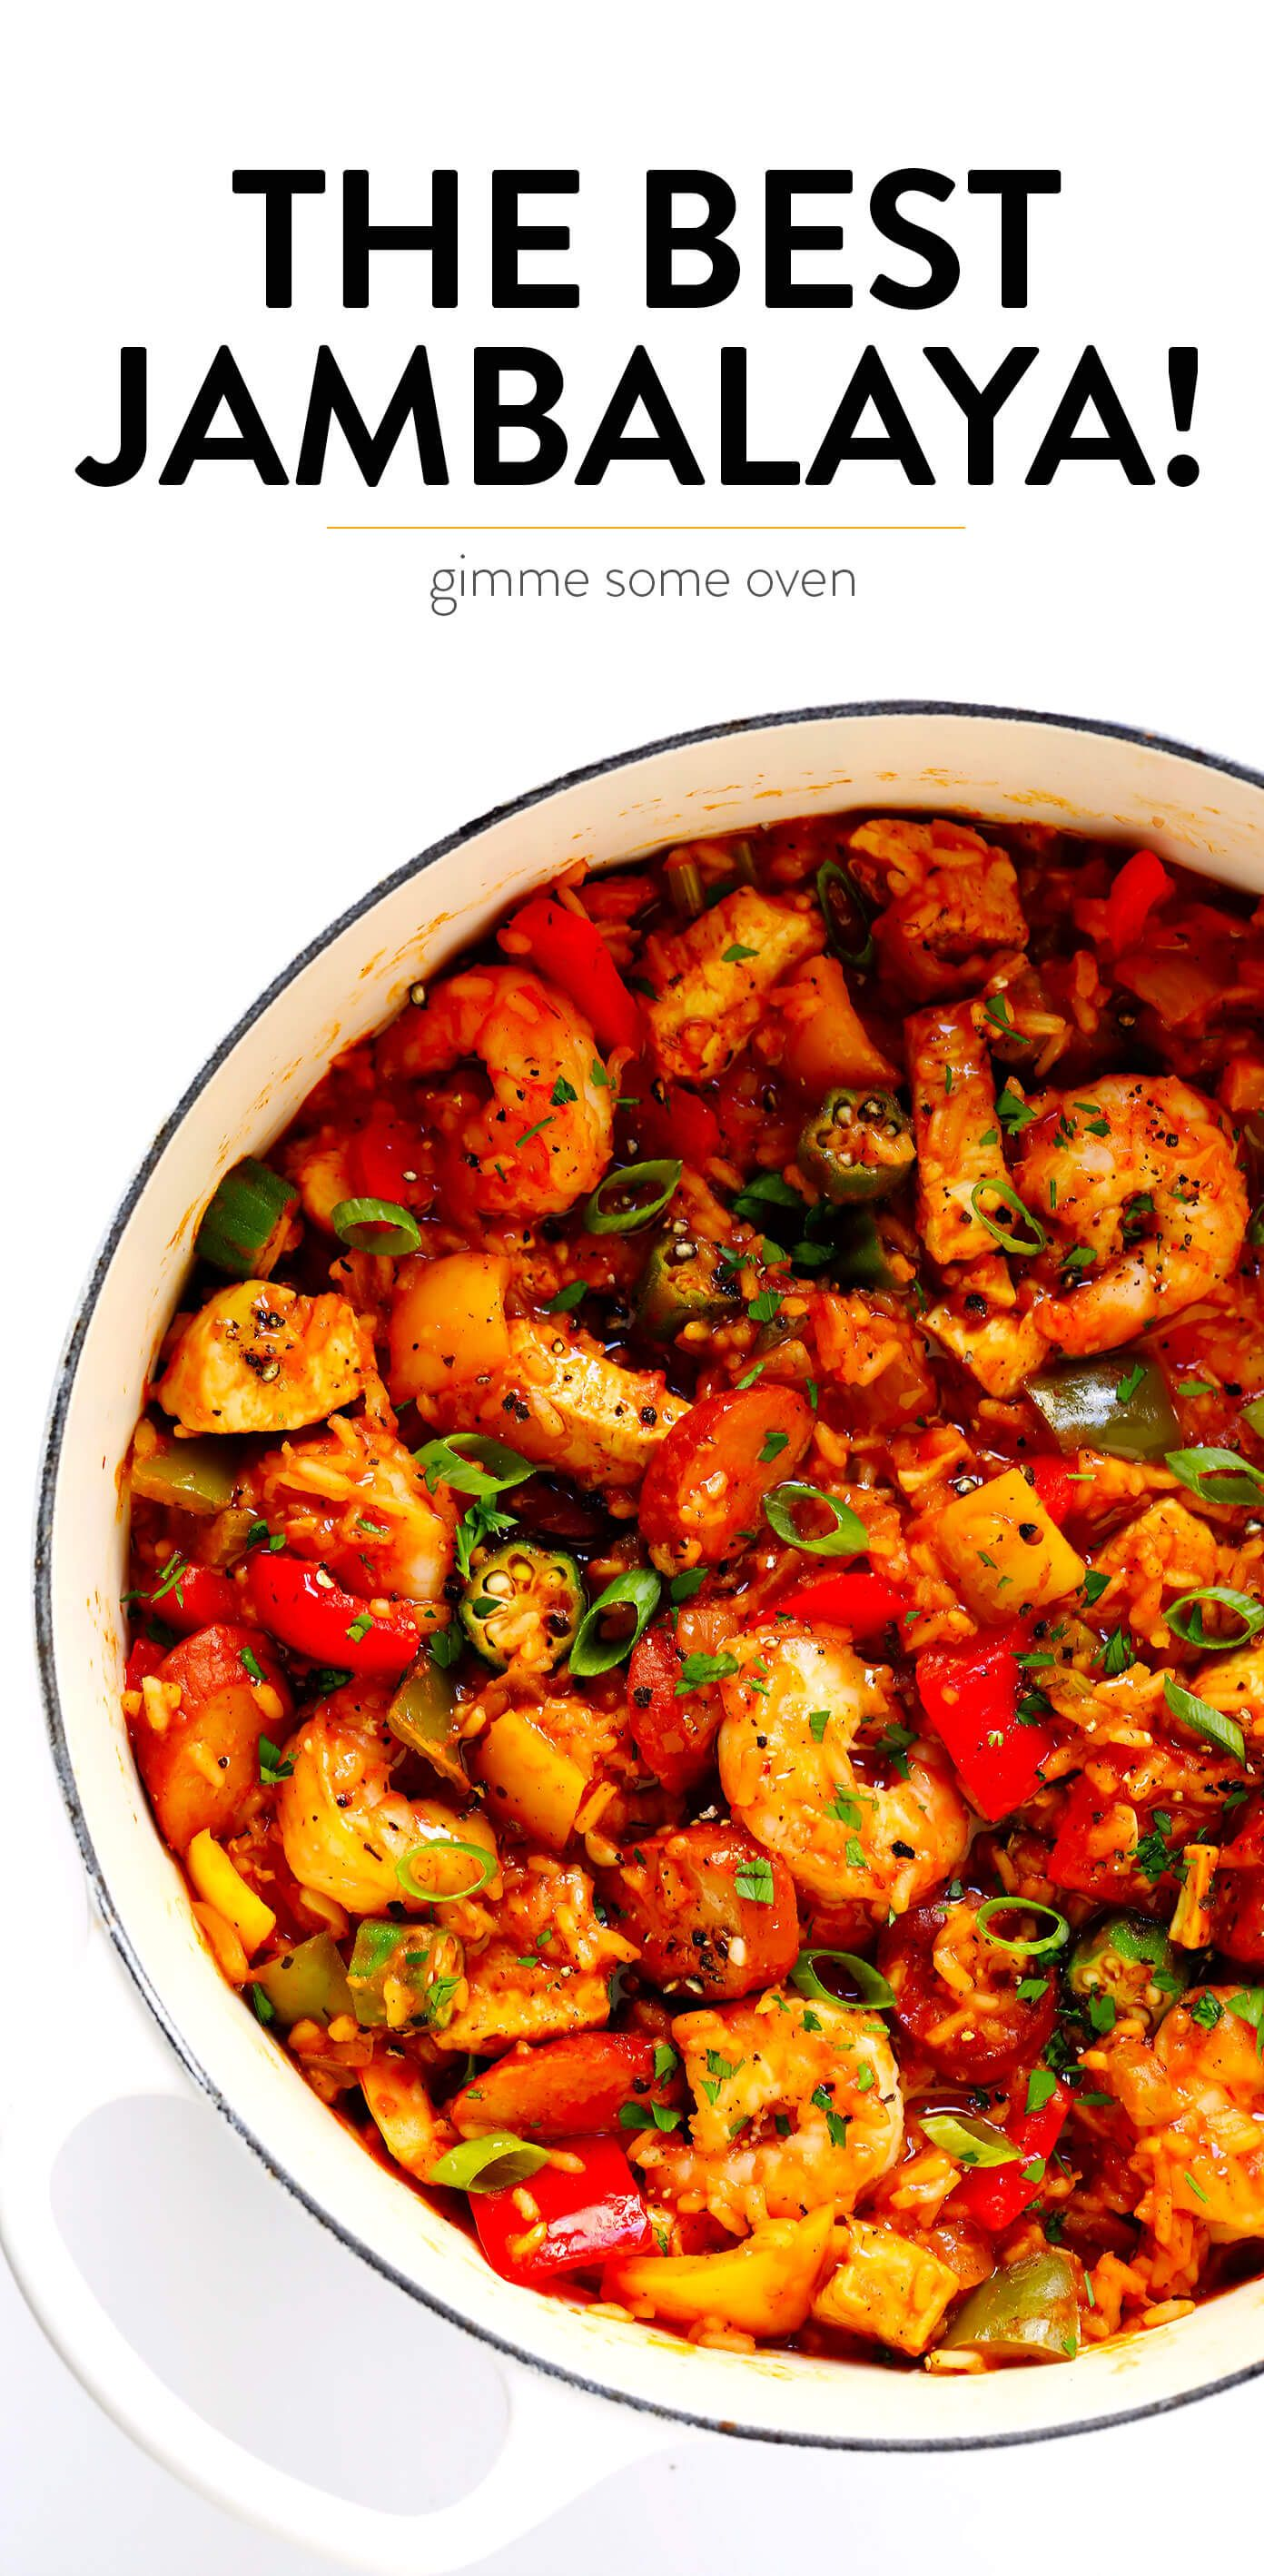 Jambalaya Recipe Gimme Some Oven Recipe Jambalaya Recipe Best Jambalaya Recipe Recipes